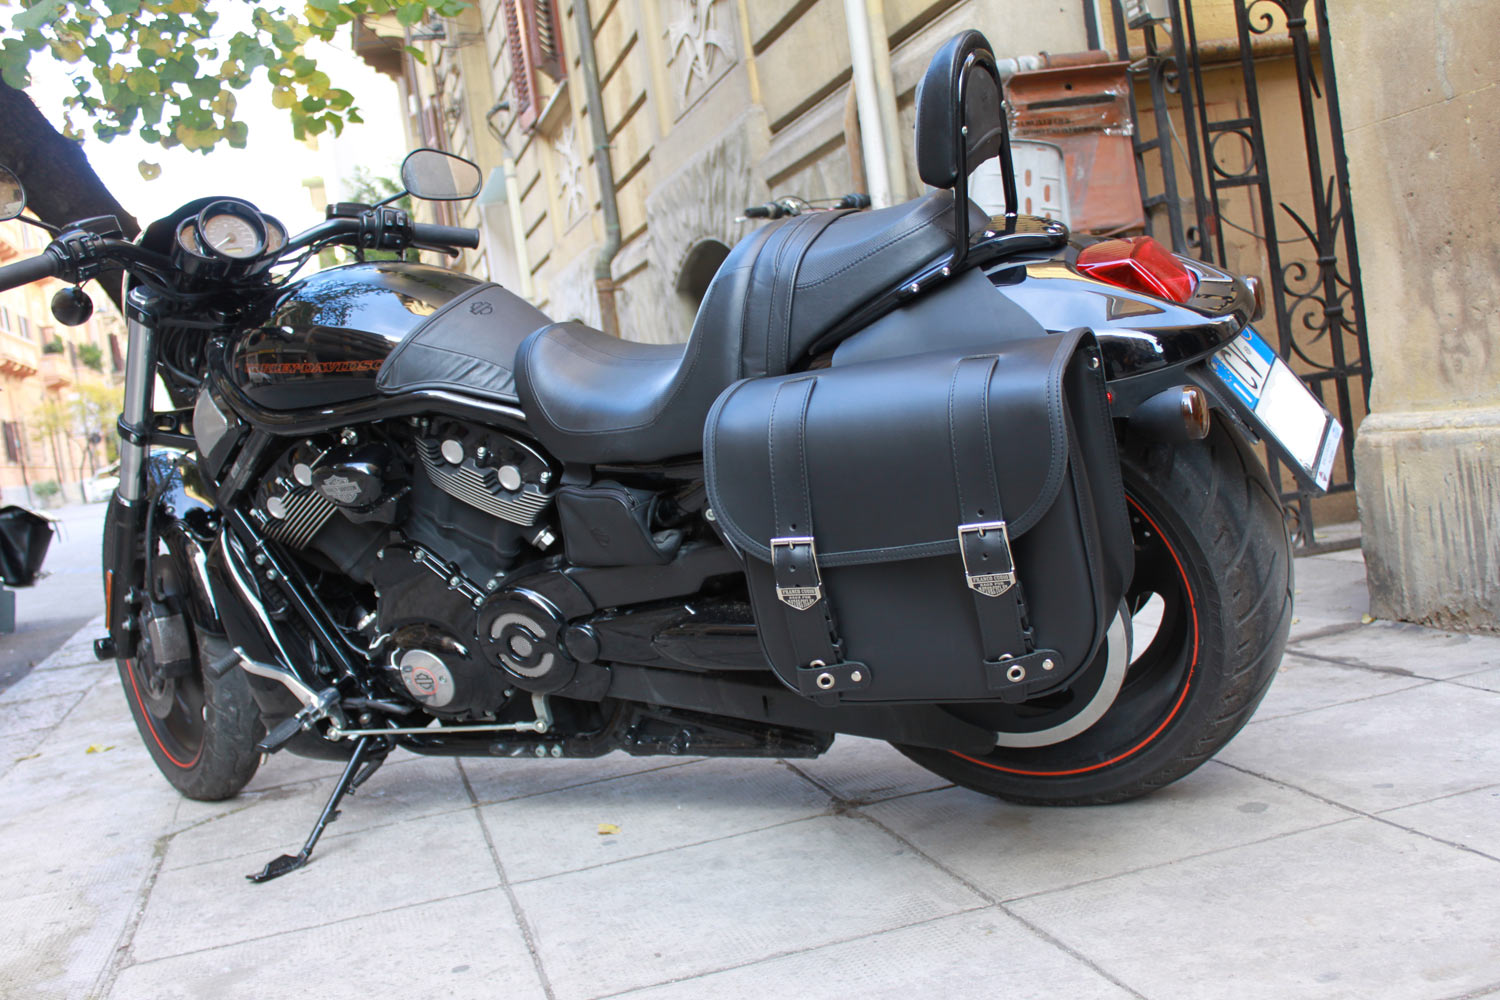 Harley V-rod / Night Rod